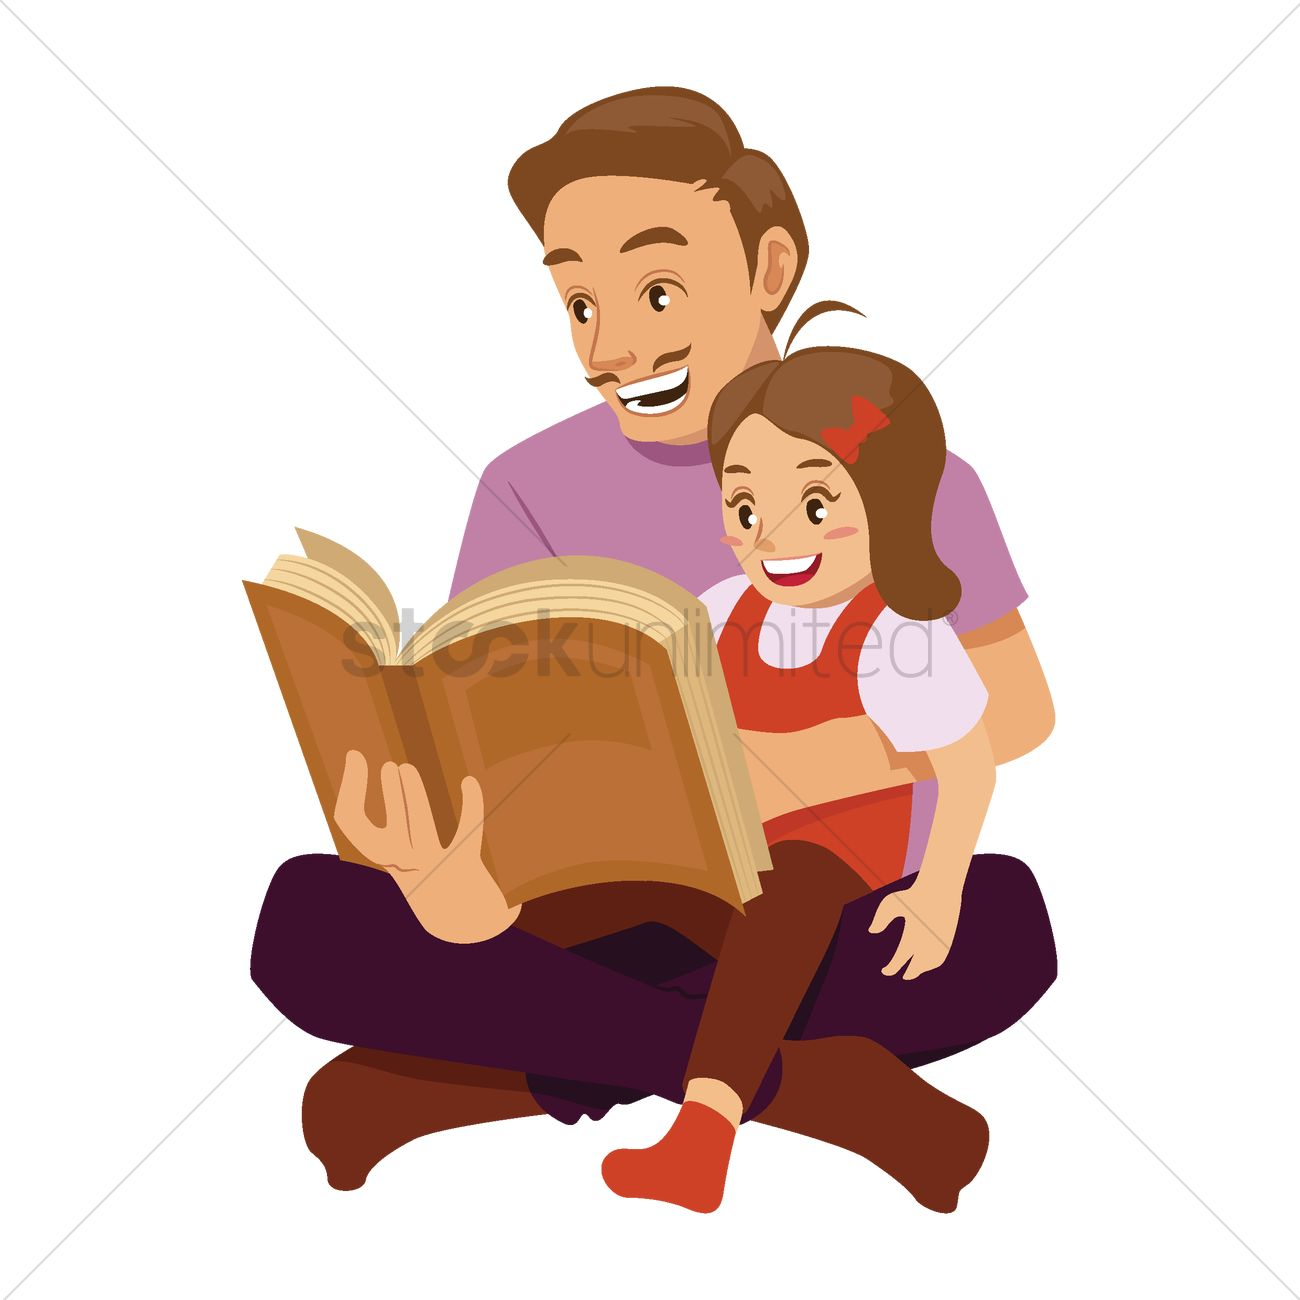 father reading to daughter vector image 1998625 stockunlimited rh stockunlimited com father and daughter dancing clipart father and daughter fishing clipart